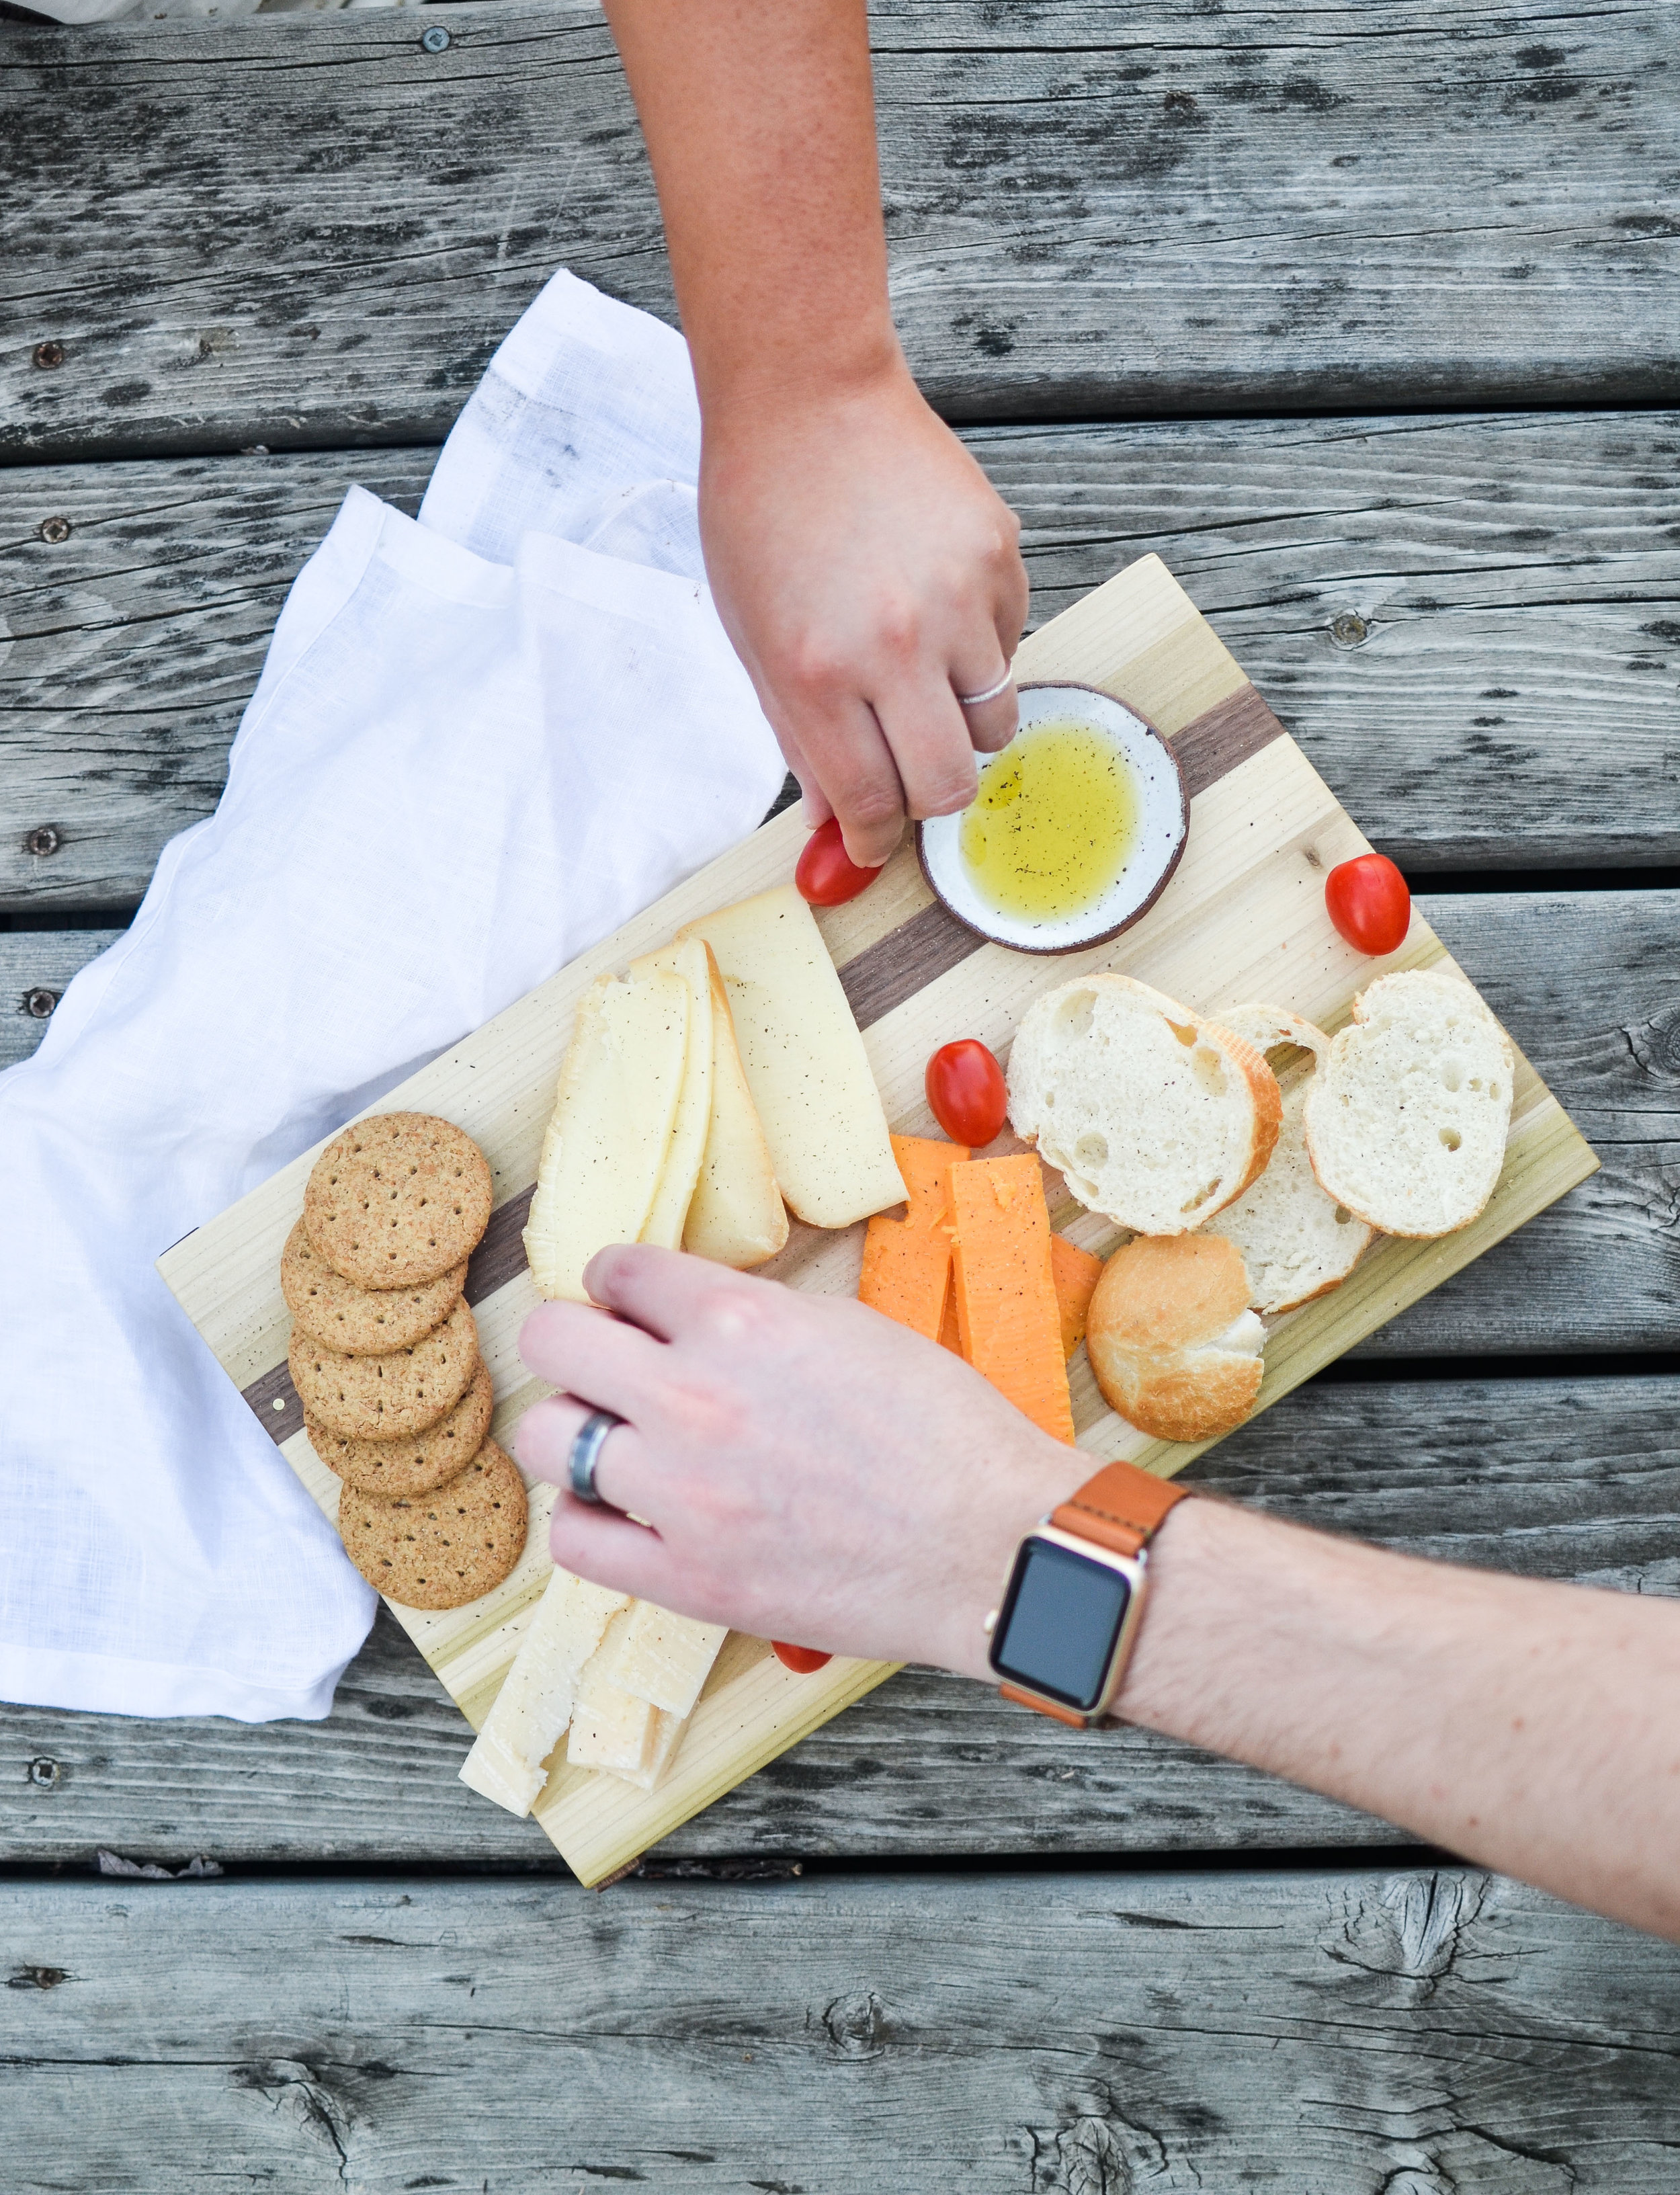 Wendling_Boyd_Gather_Table_Co_Charcuterie_Plate-3.jpg